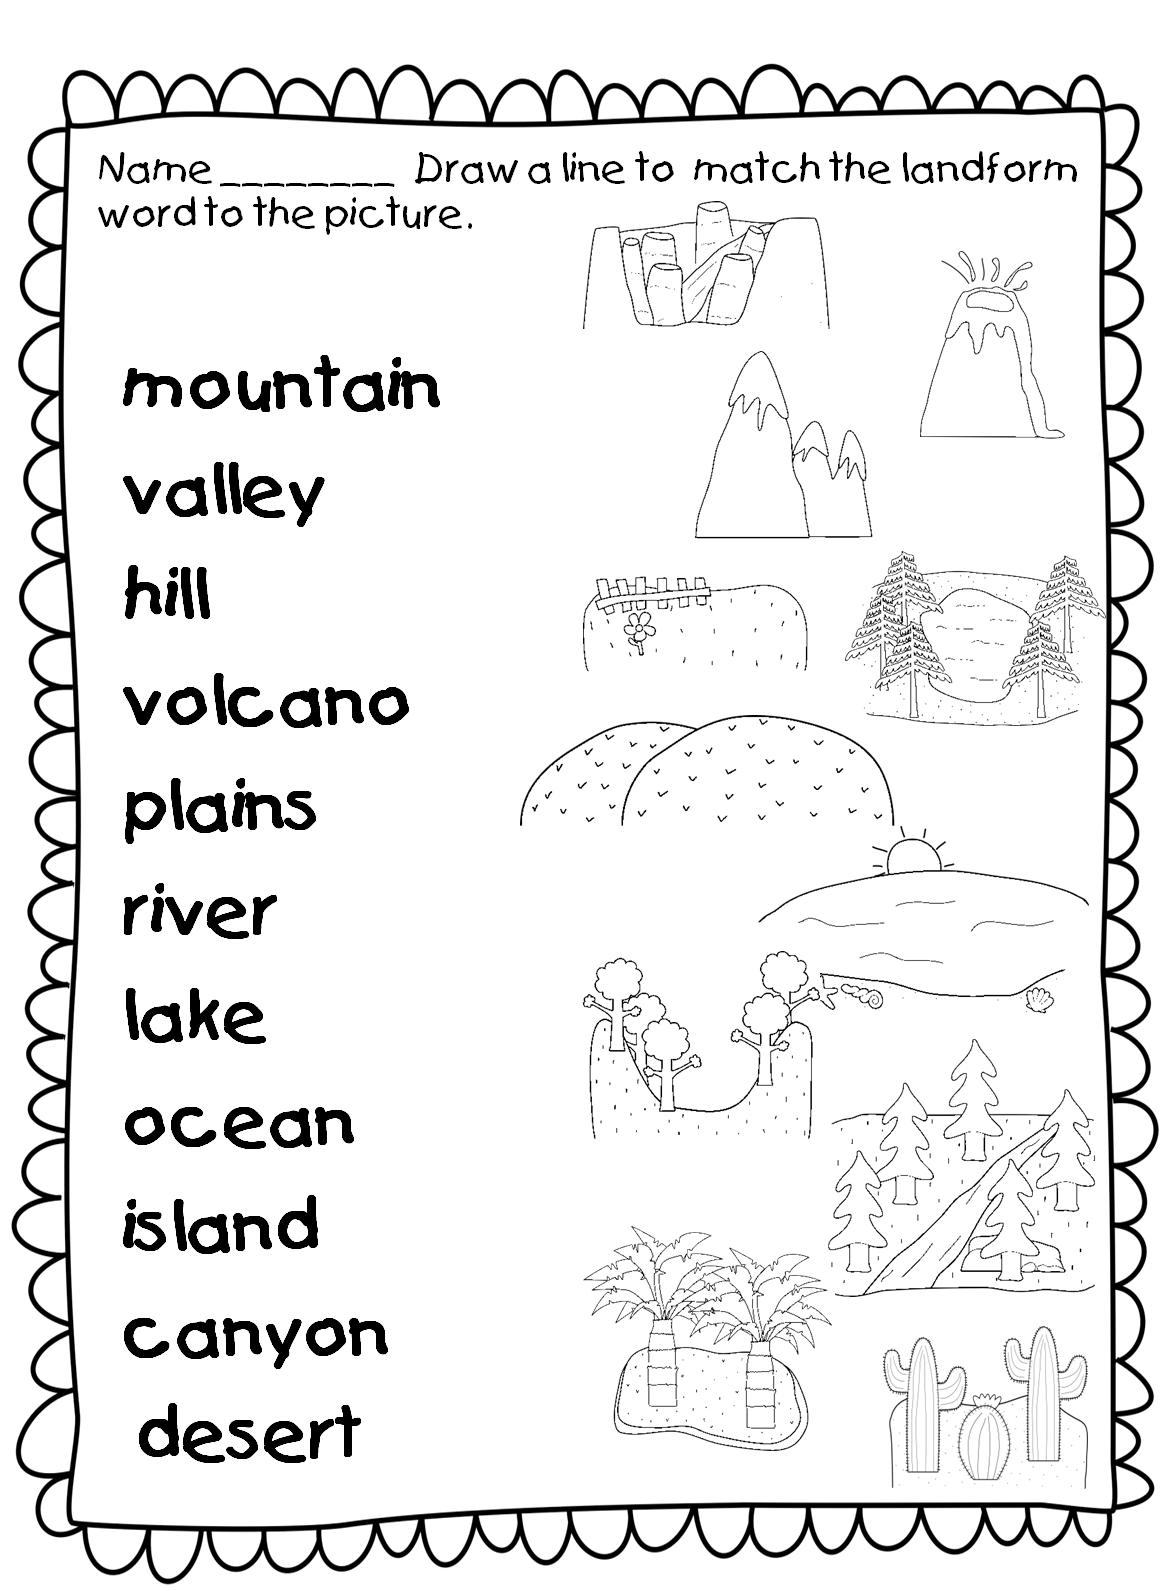 Workbooks landform matching worksheets : Hello Everyone! One wonderful perk about the 15 hour drive home? I ...